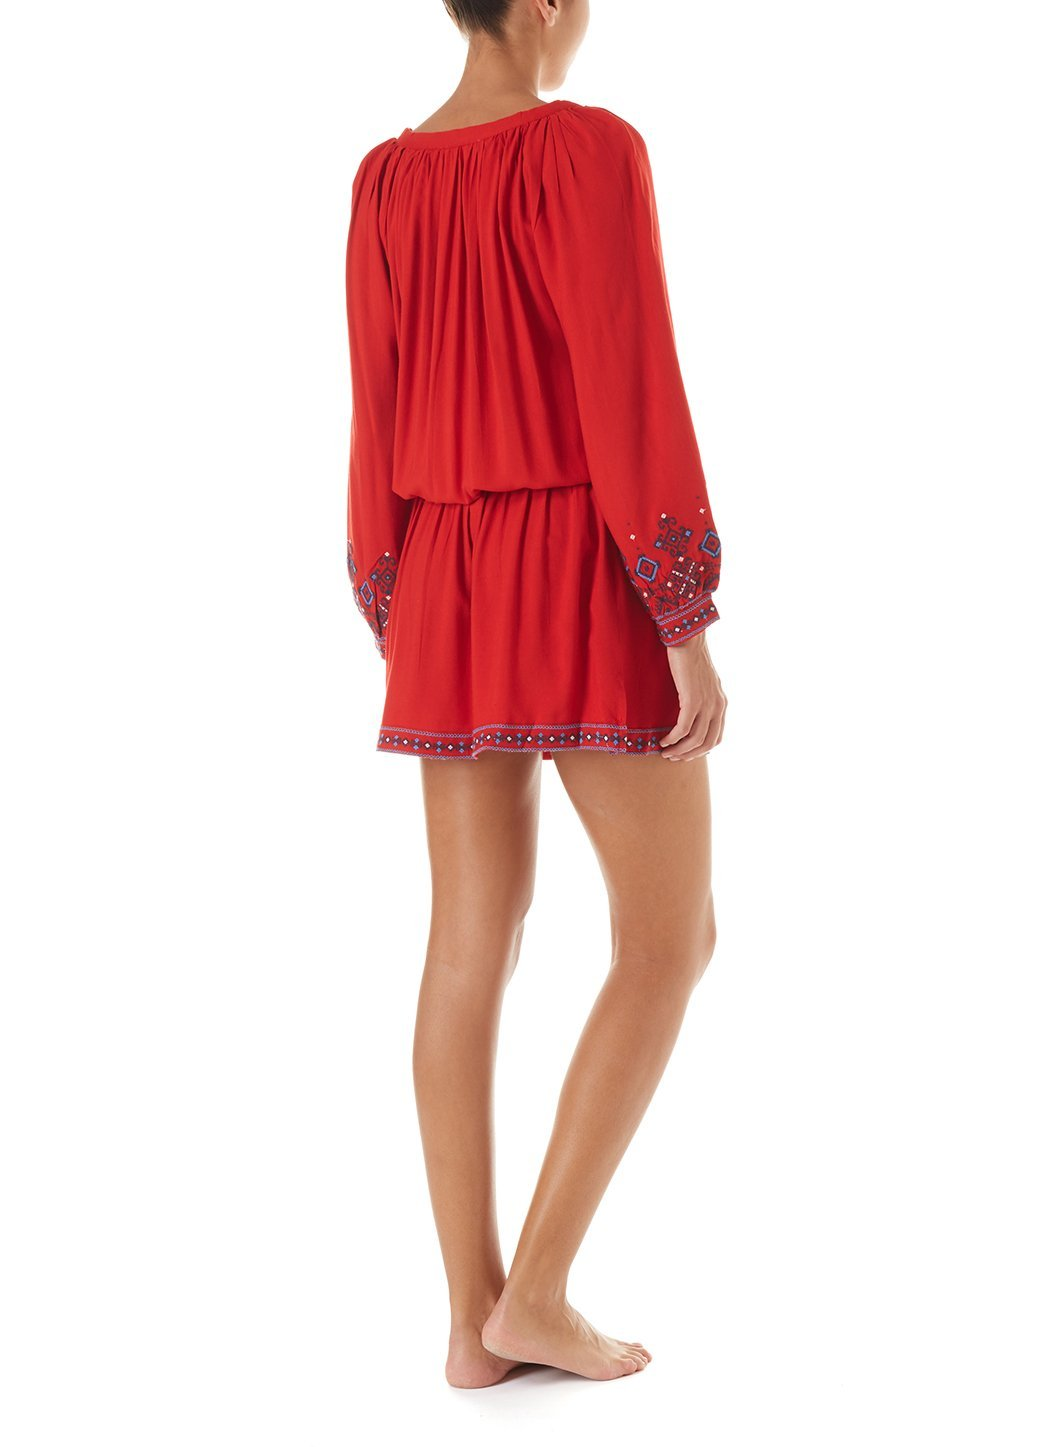 nadja red embroidered 34sleeve short dress 2019 B